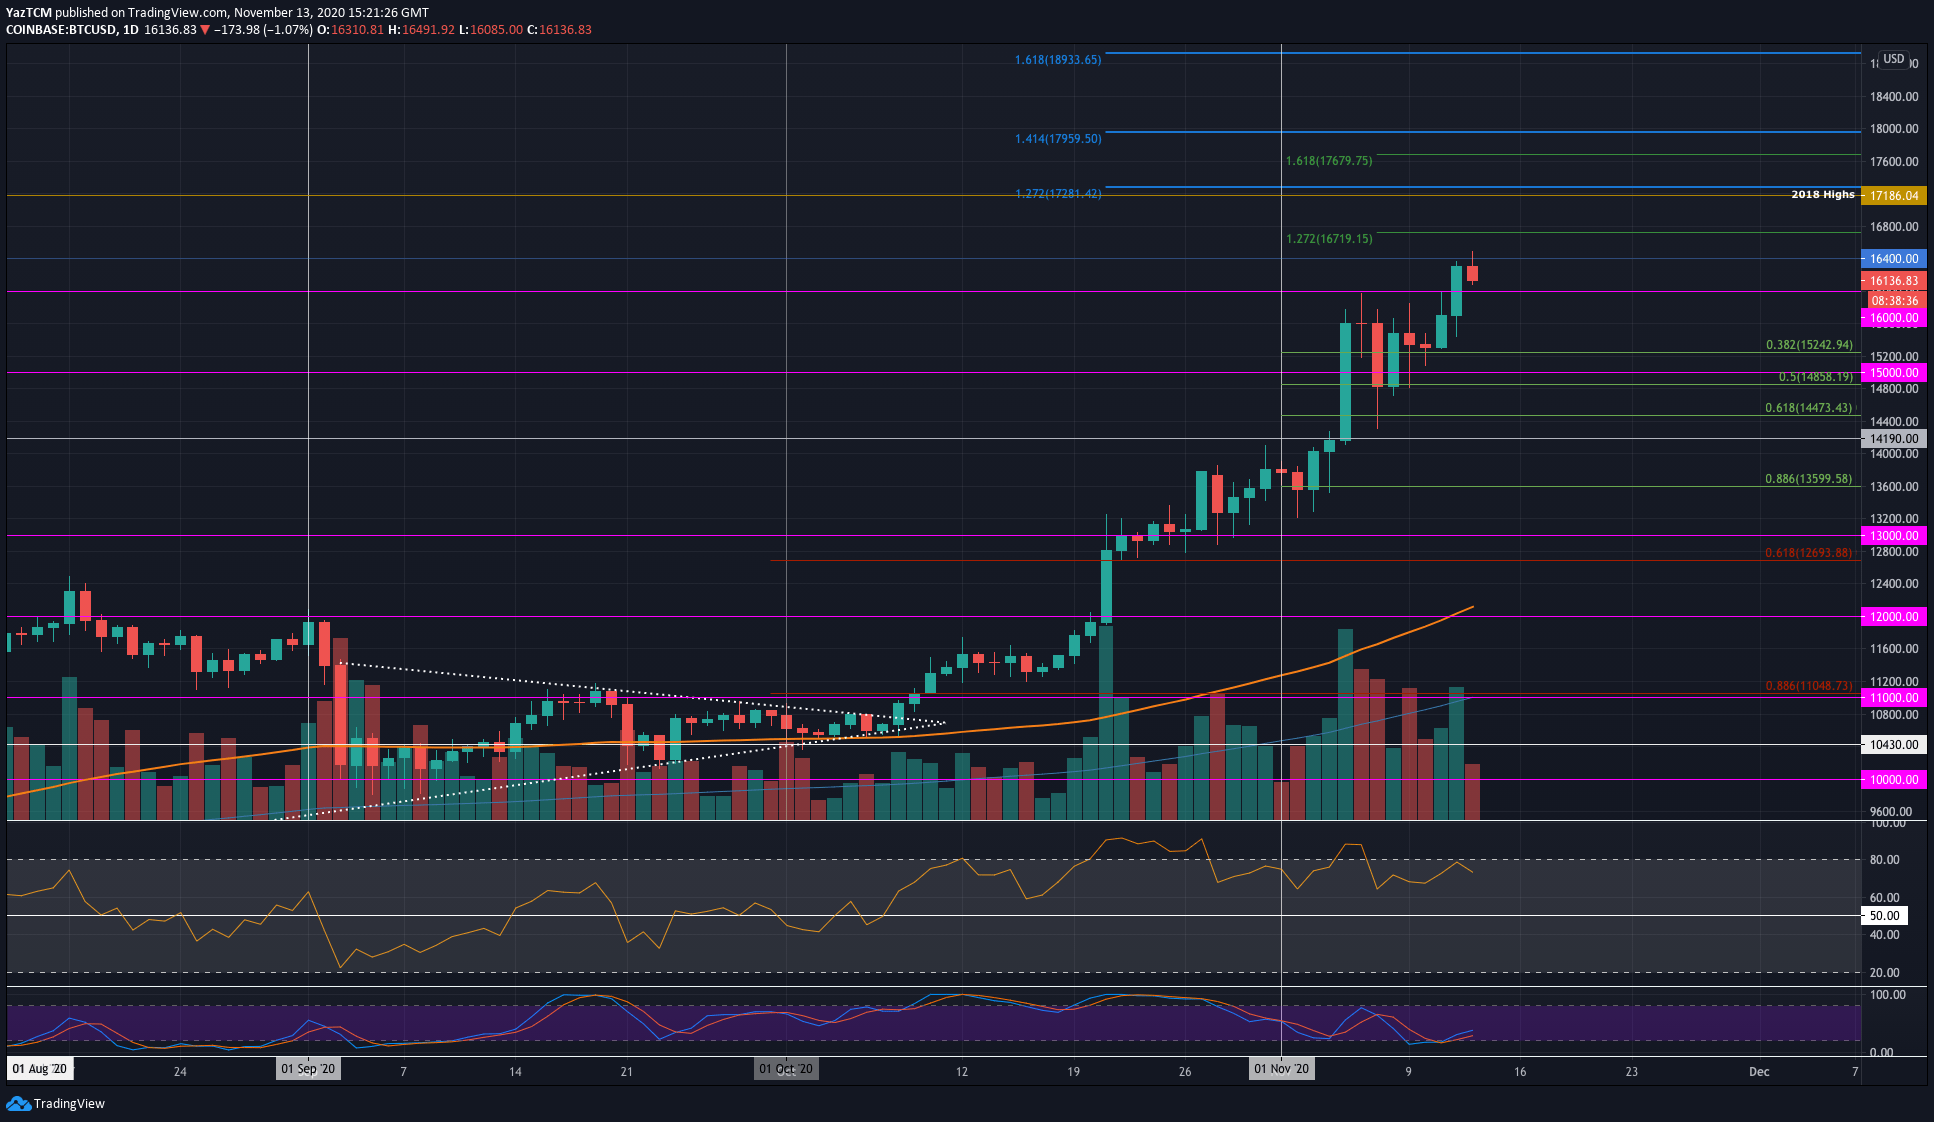 Crypto Price Analysis & Overview November 13th: Bitcoin, Ethereum, Ripple, Chainlink & Cardano